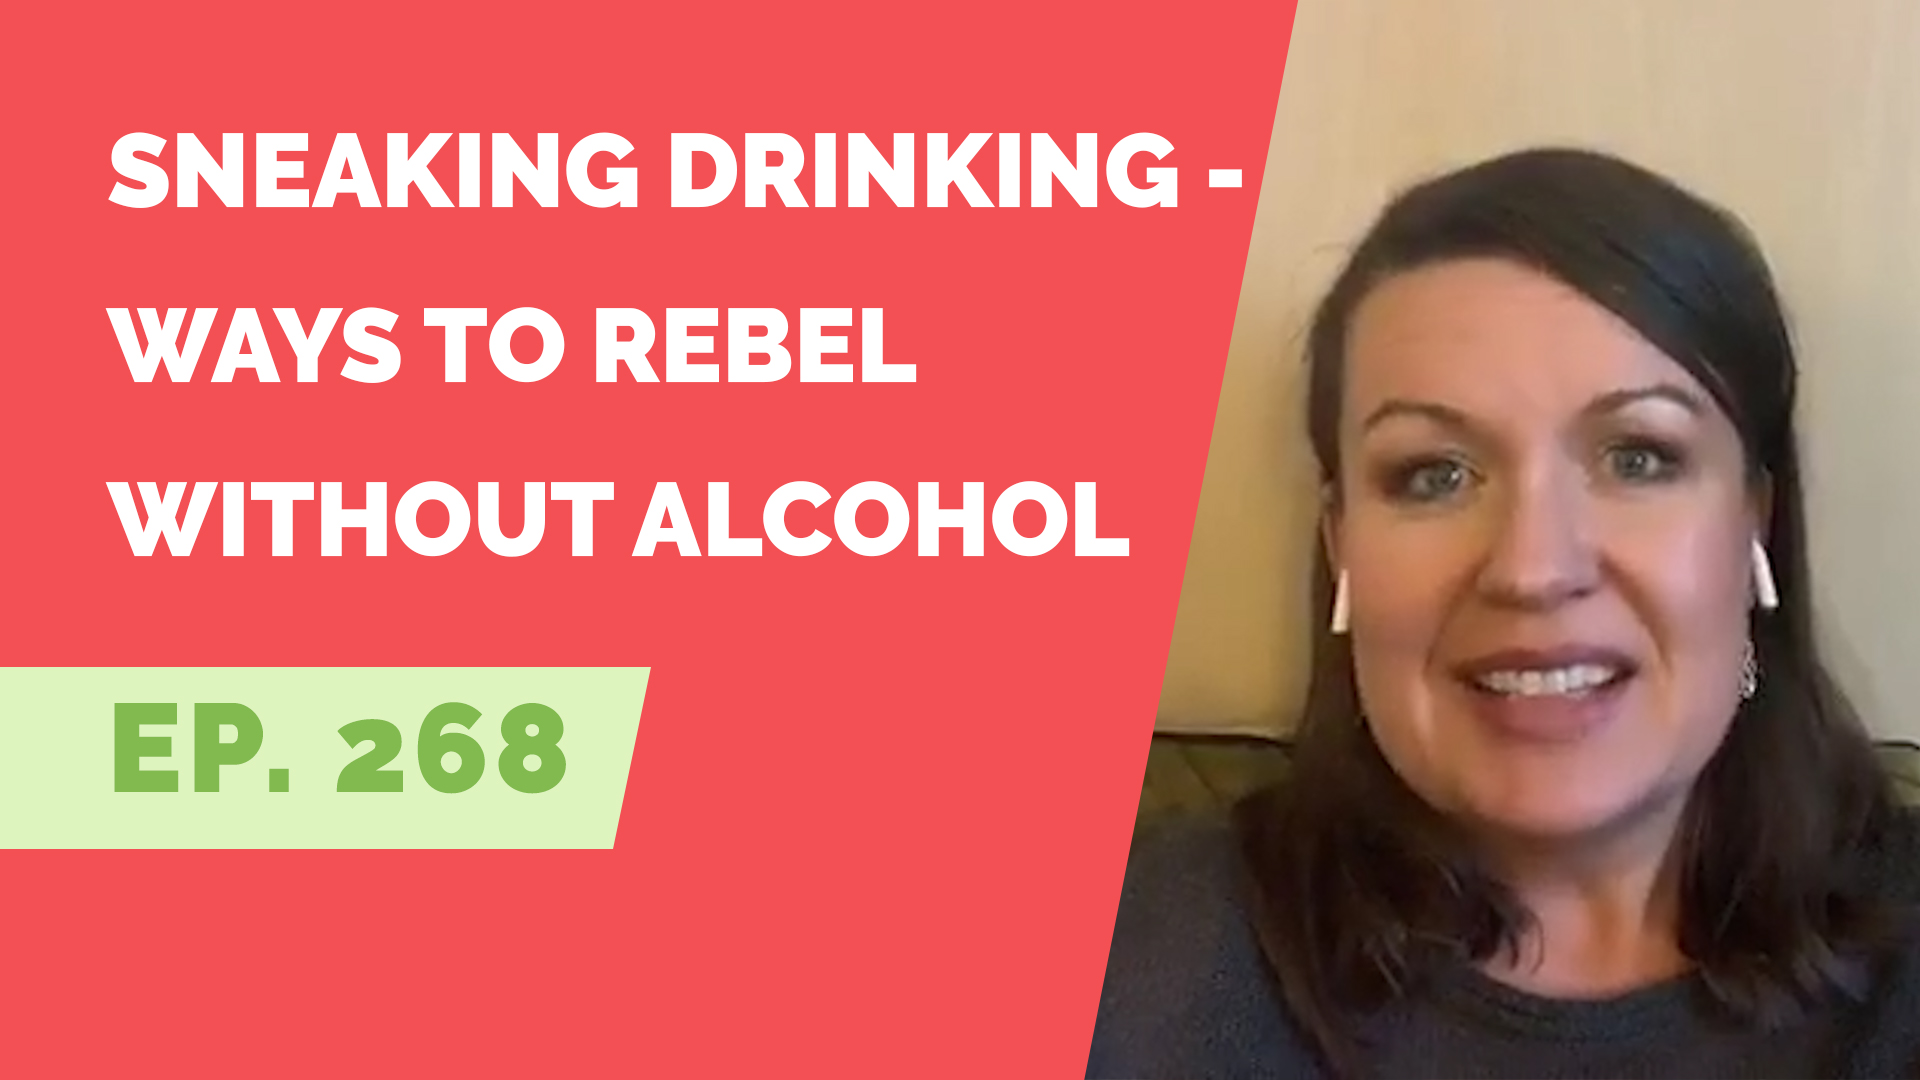 rebel without drinking